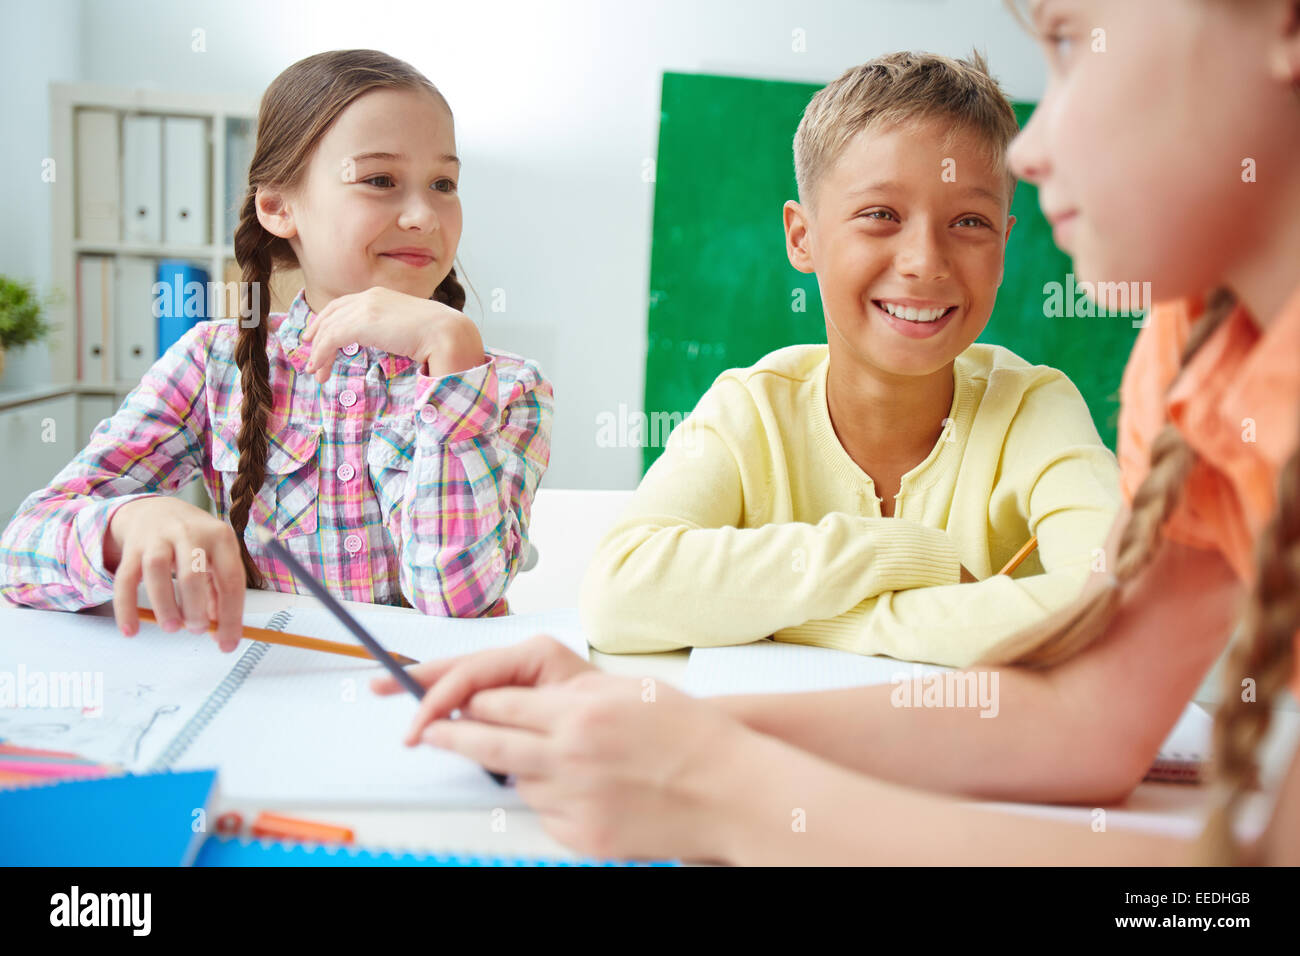 Group of adorable schoolmates discussing ideas at drawing lesson - Stock Image